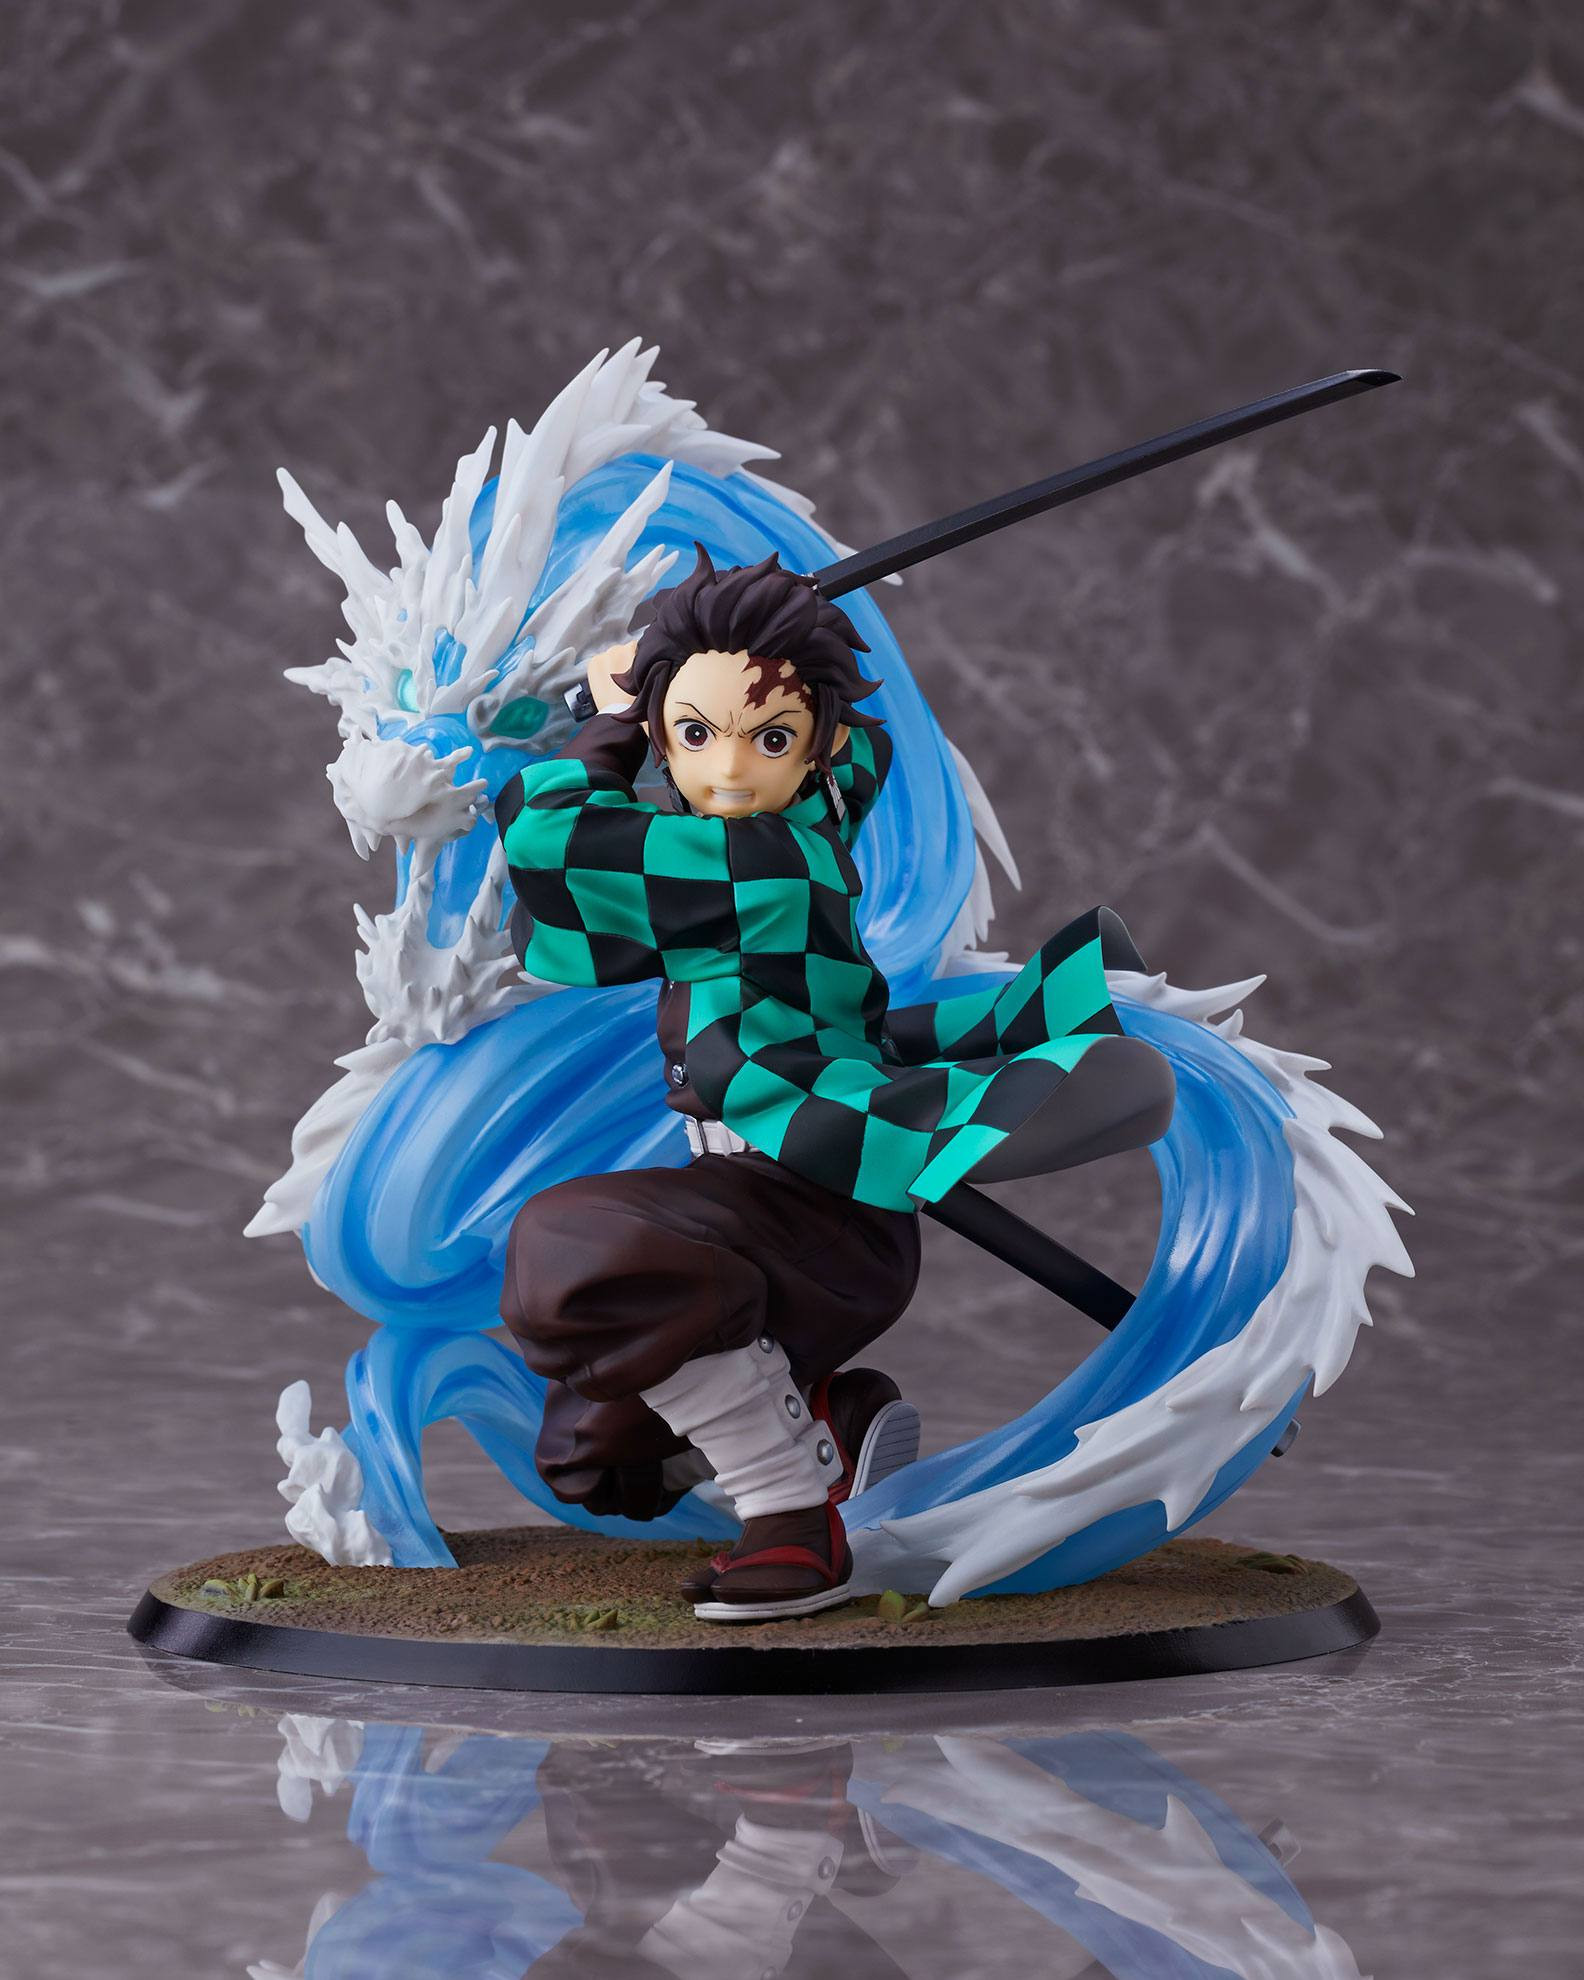 Demon Slayer: Kimetsu no Yaiba - Tanjiro Kamado [Constant Flux] 1/8 Scale  Figure